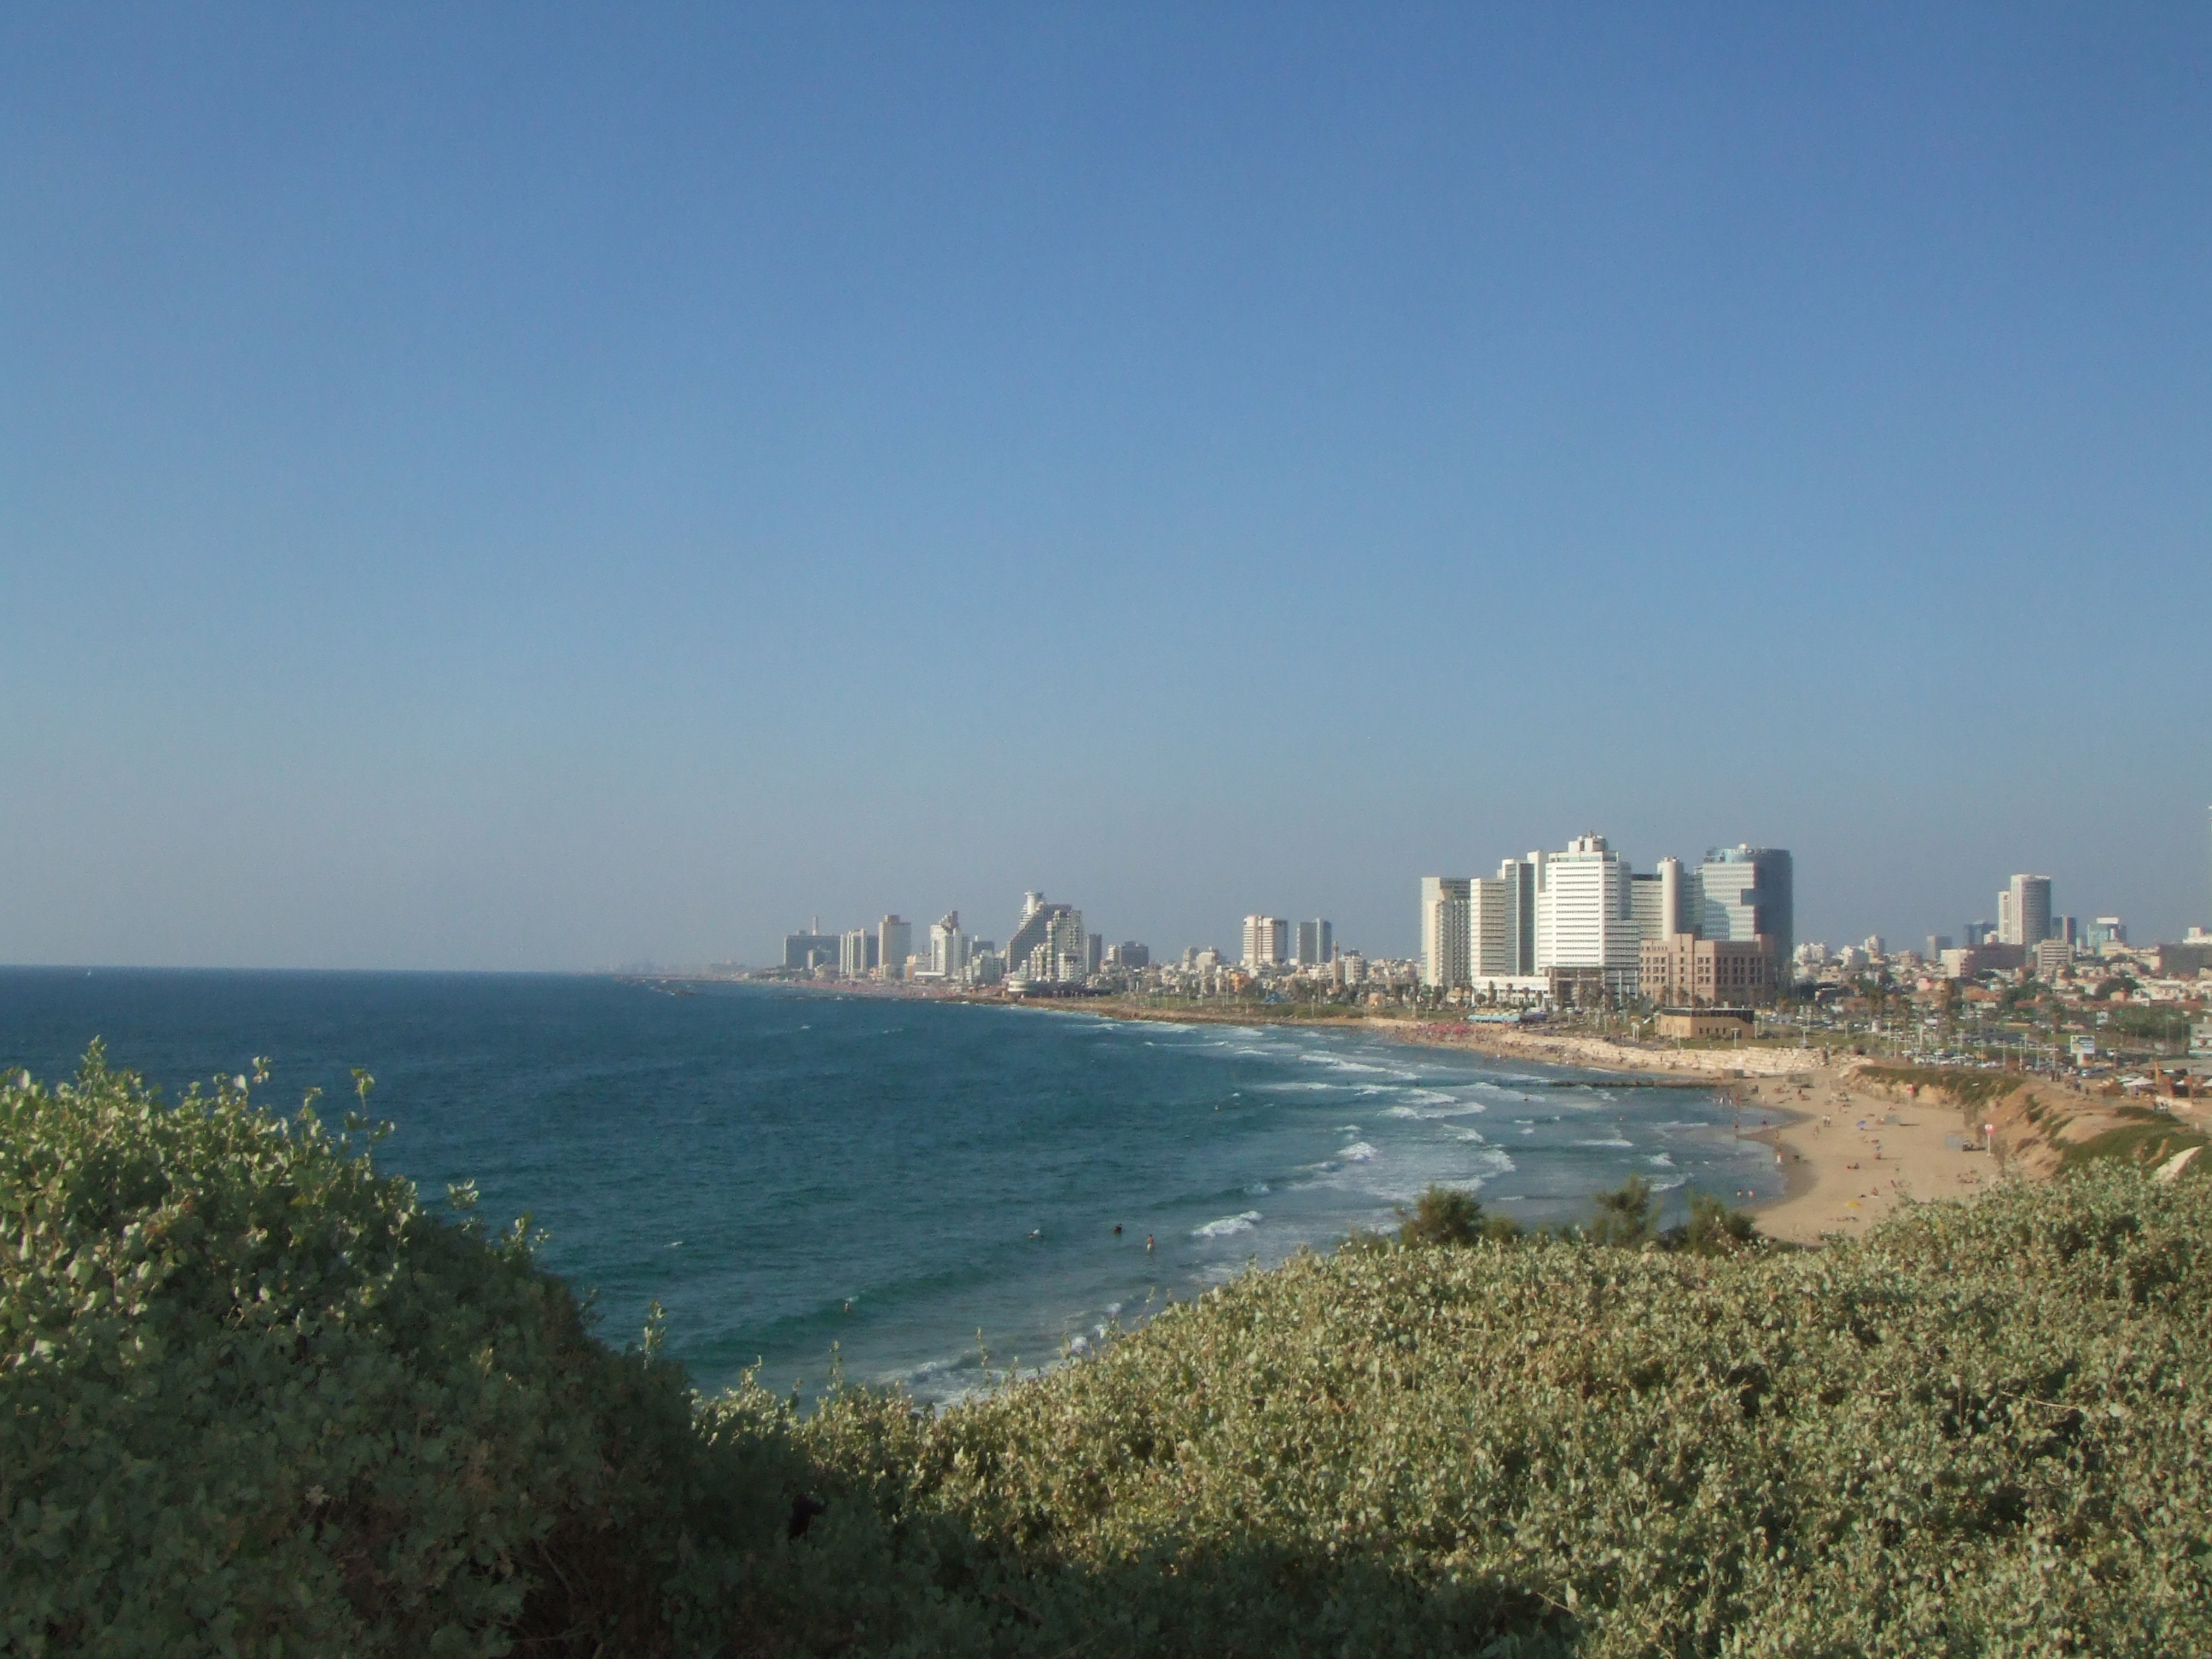 View of Tel Aviv from Jaffa, Israel